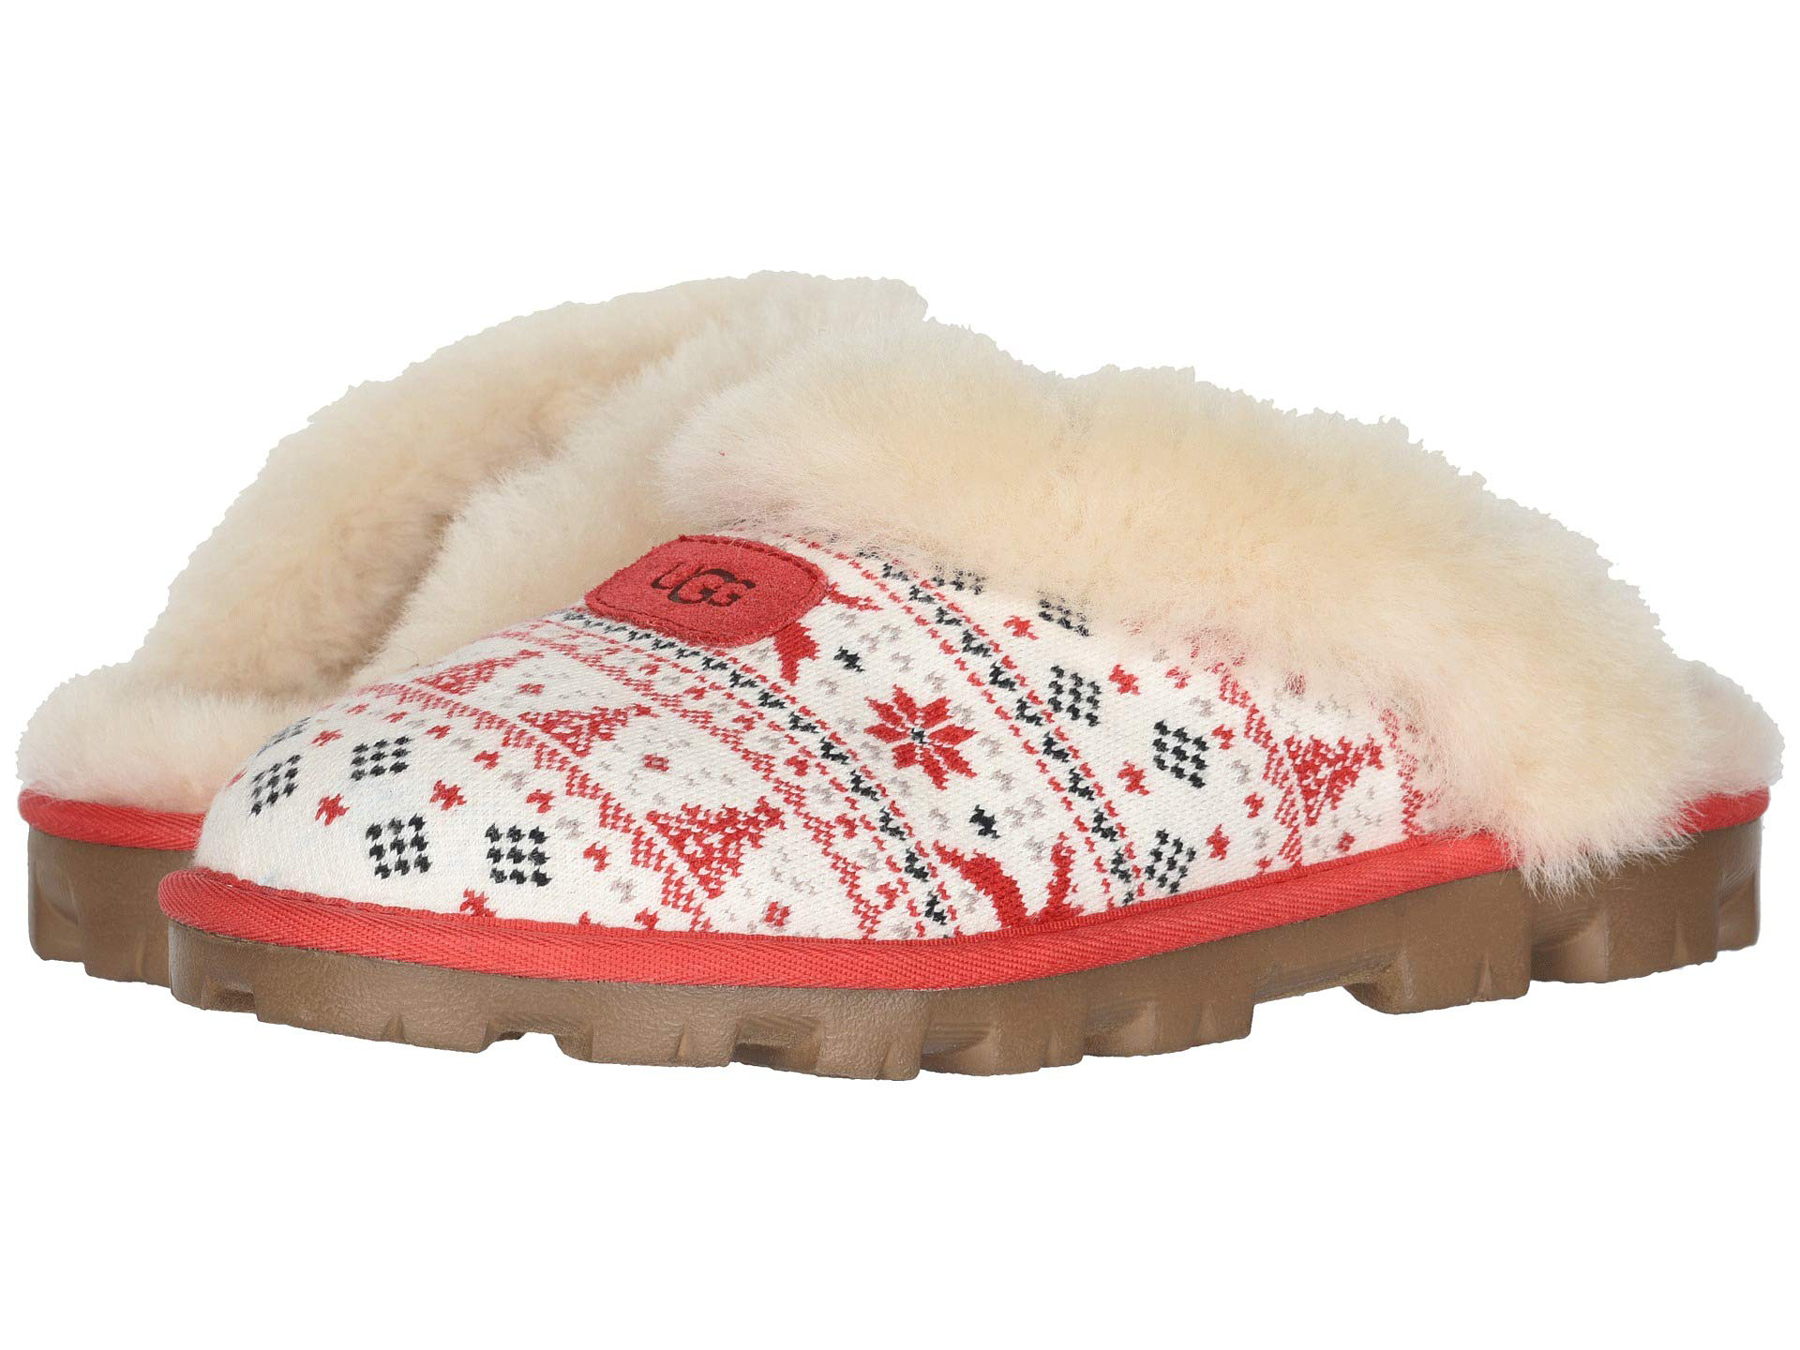 6 Clever Items 11/29/19 - Zappos x UGG Holiday Sweater Slipper